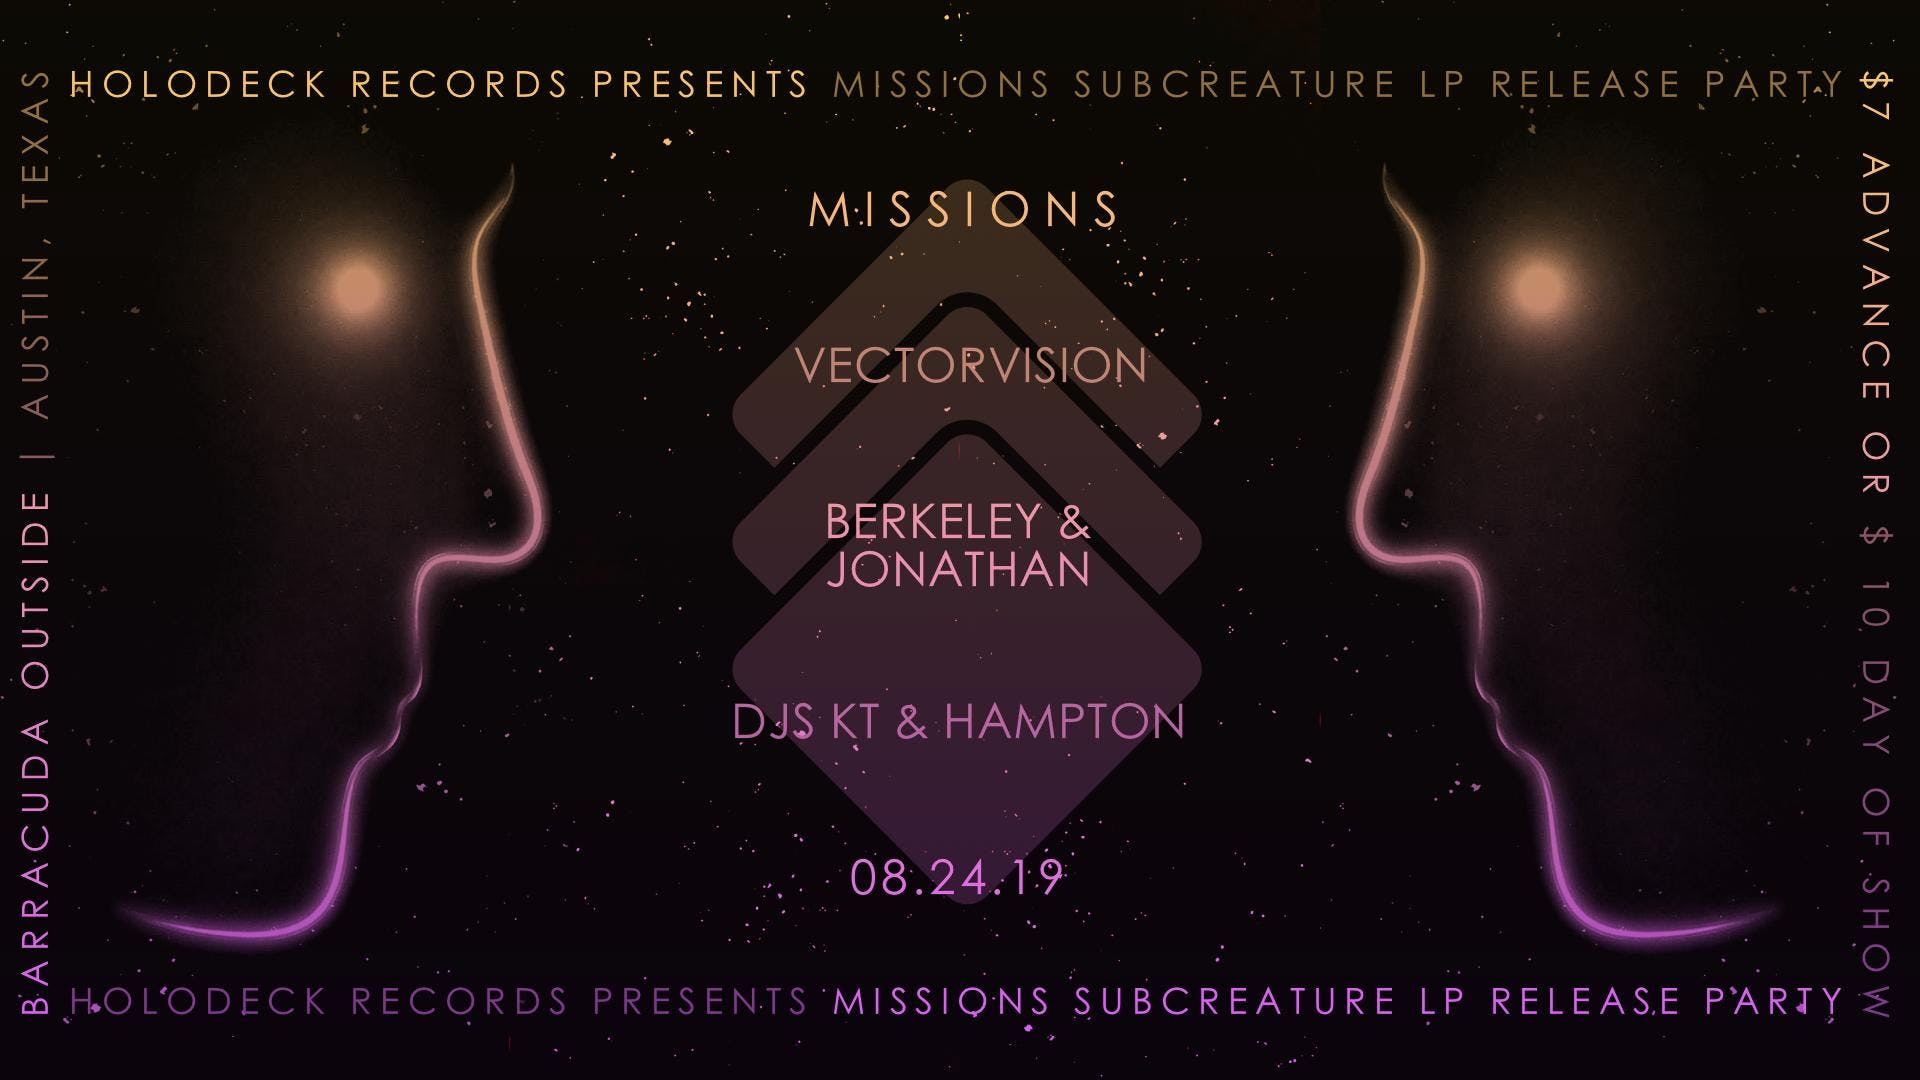 Missions (Record Release) Vectorvision, Berkley and Jonathan, DJ's KT and  Hampton